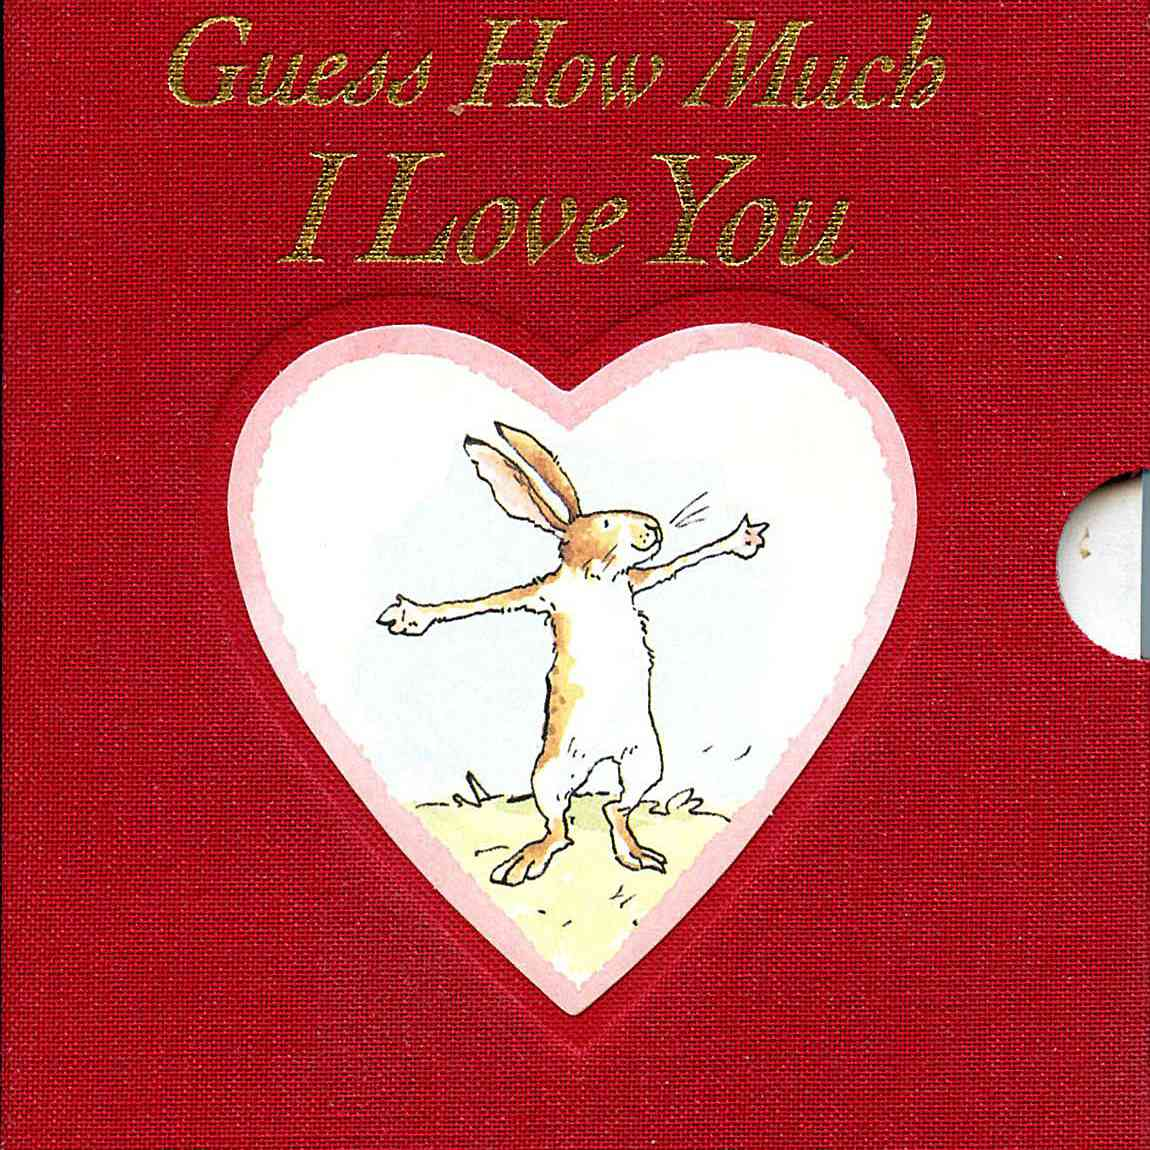 Guess How Much I Love You - boxed gift edition